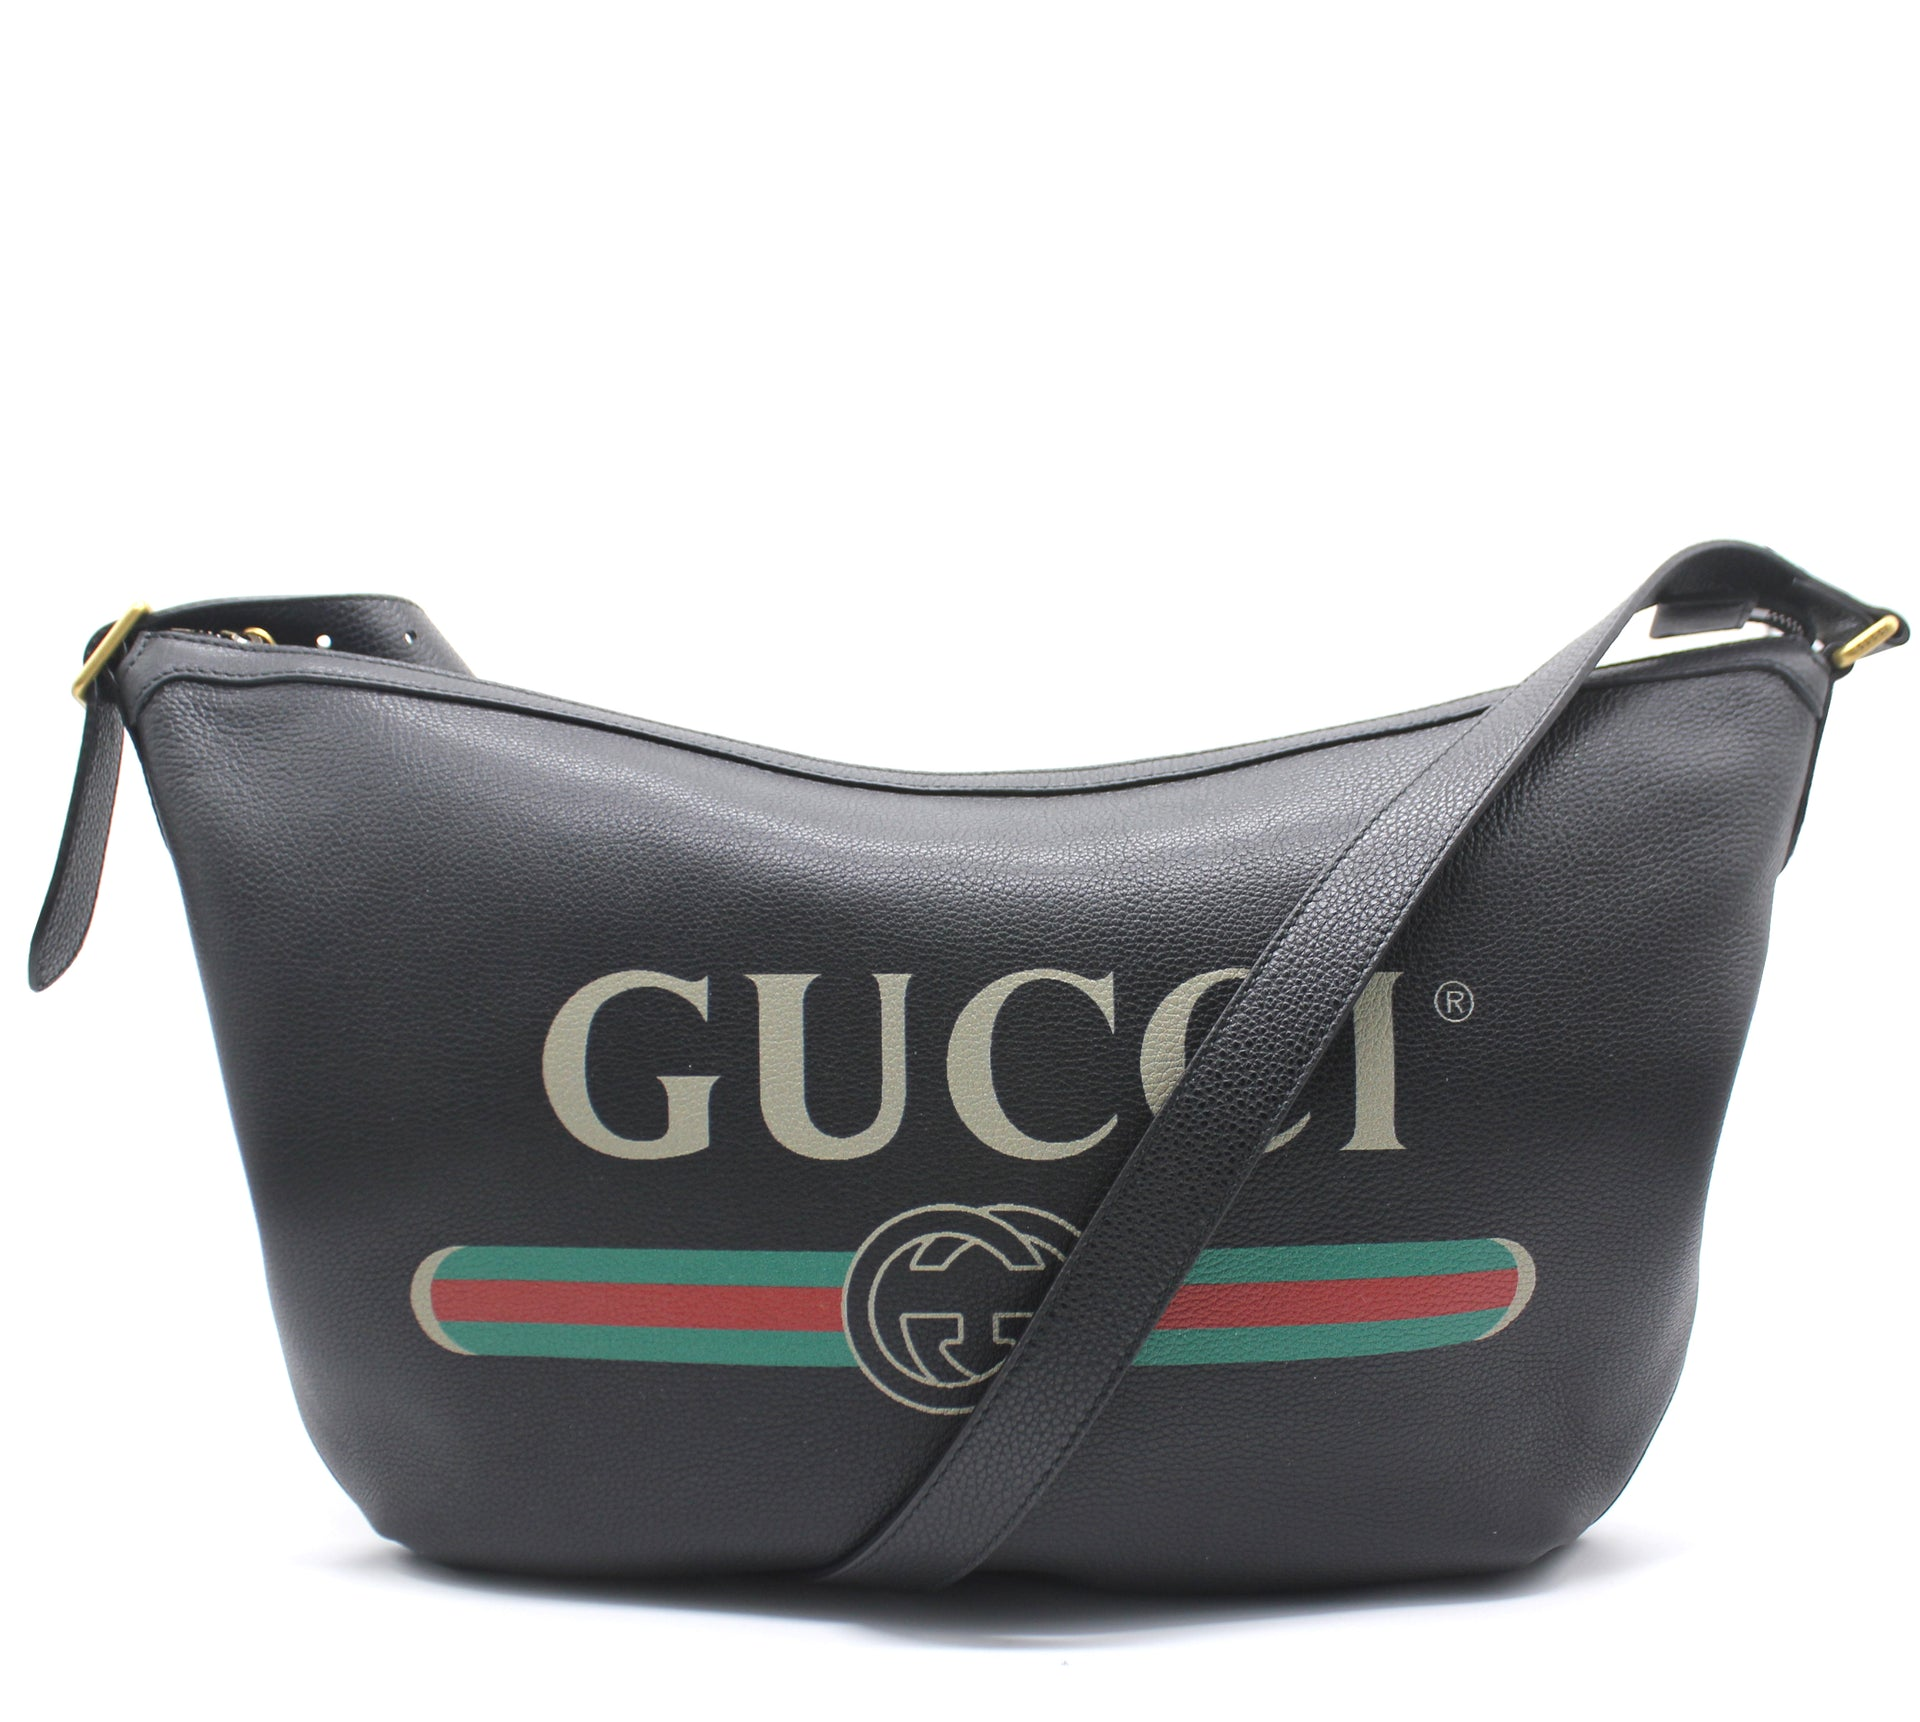 Gucci Print half-moon hobo bag